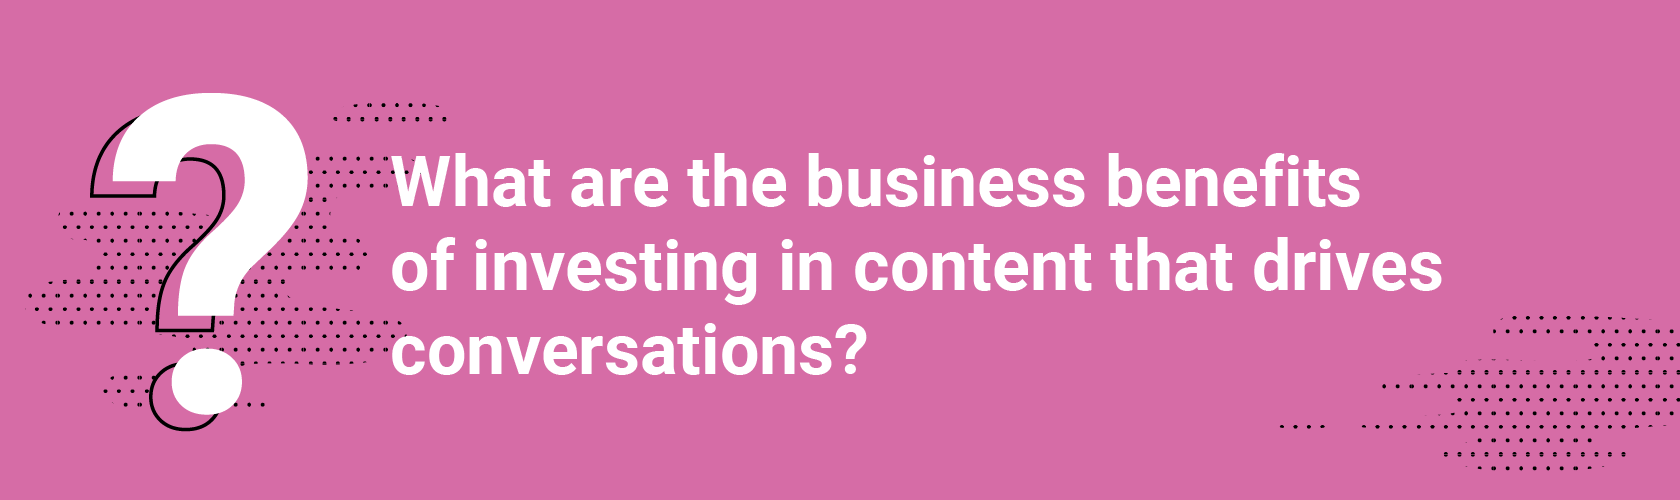 Q1. What are the business benefits of investing in content that drives conversations?